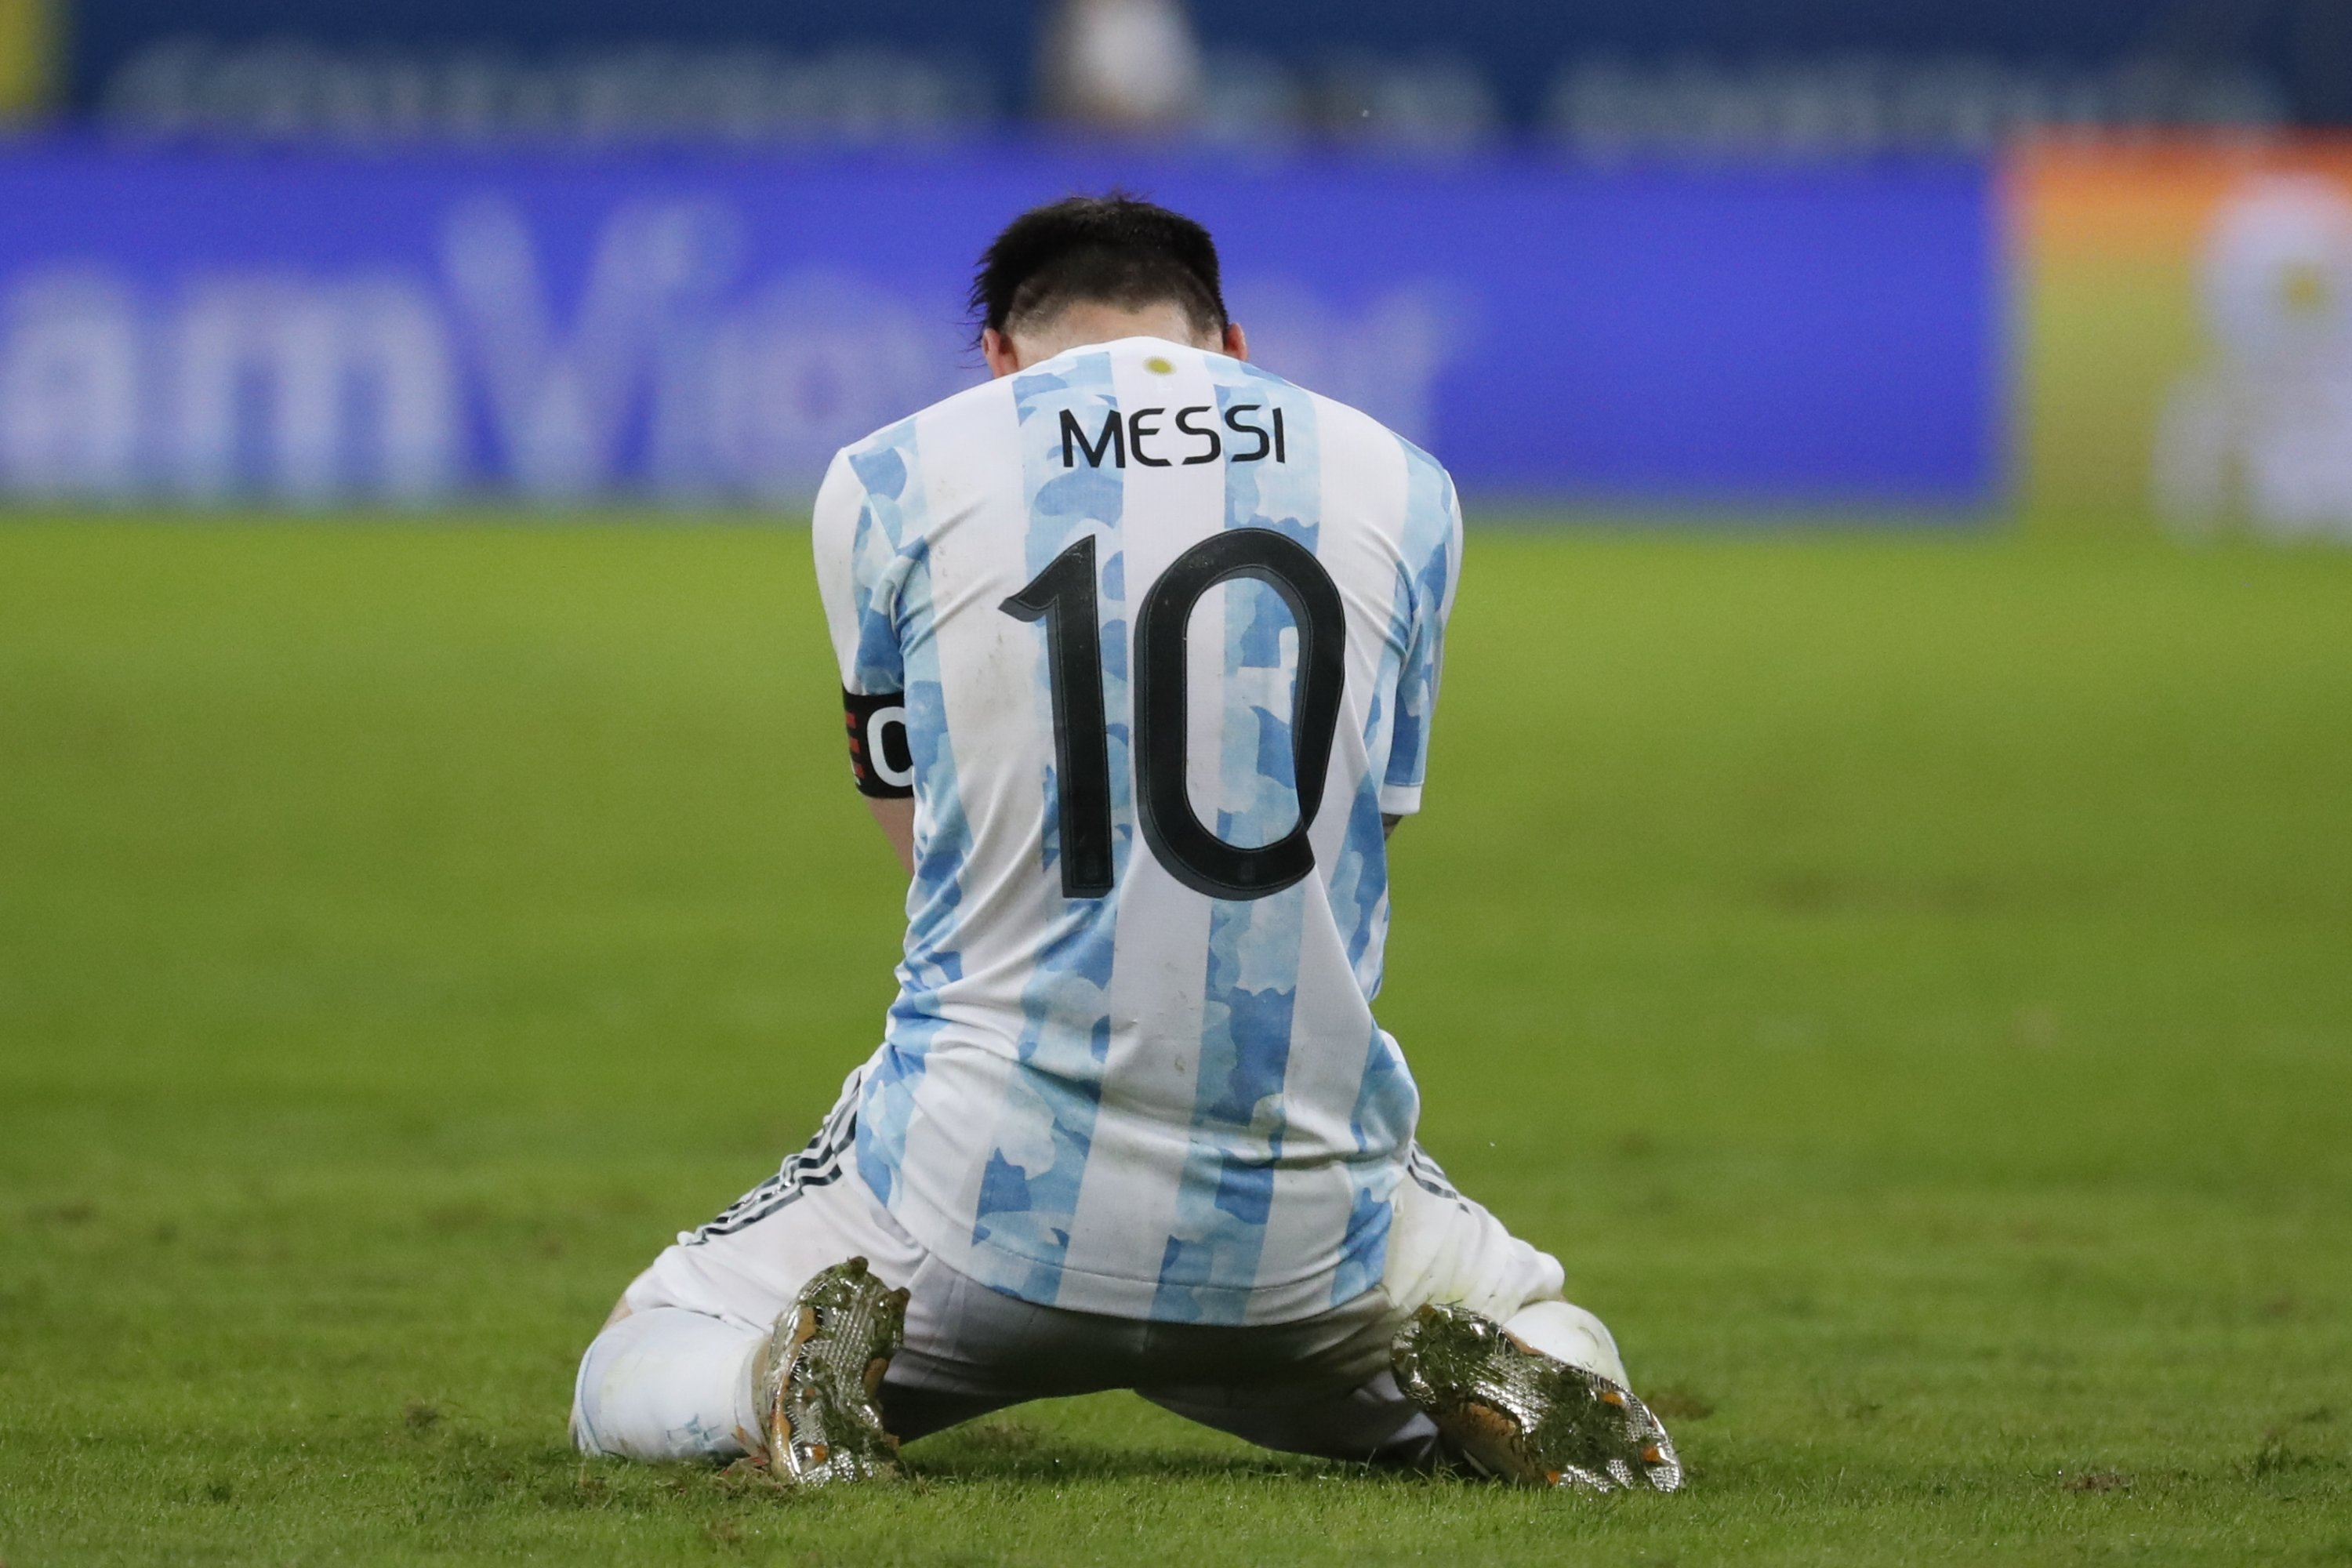 Argentina's Lionel Messi kneels at the end of the Copa America final match at the Maracana stadium in Rio de Janeiro, Brazil, July 10, 2021. (AP Photo)